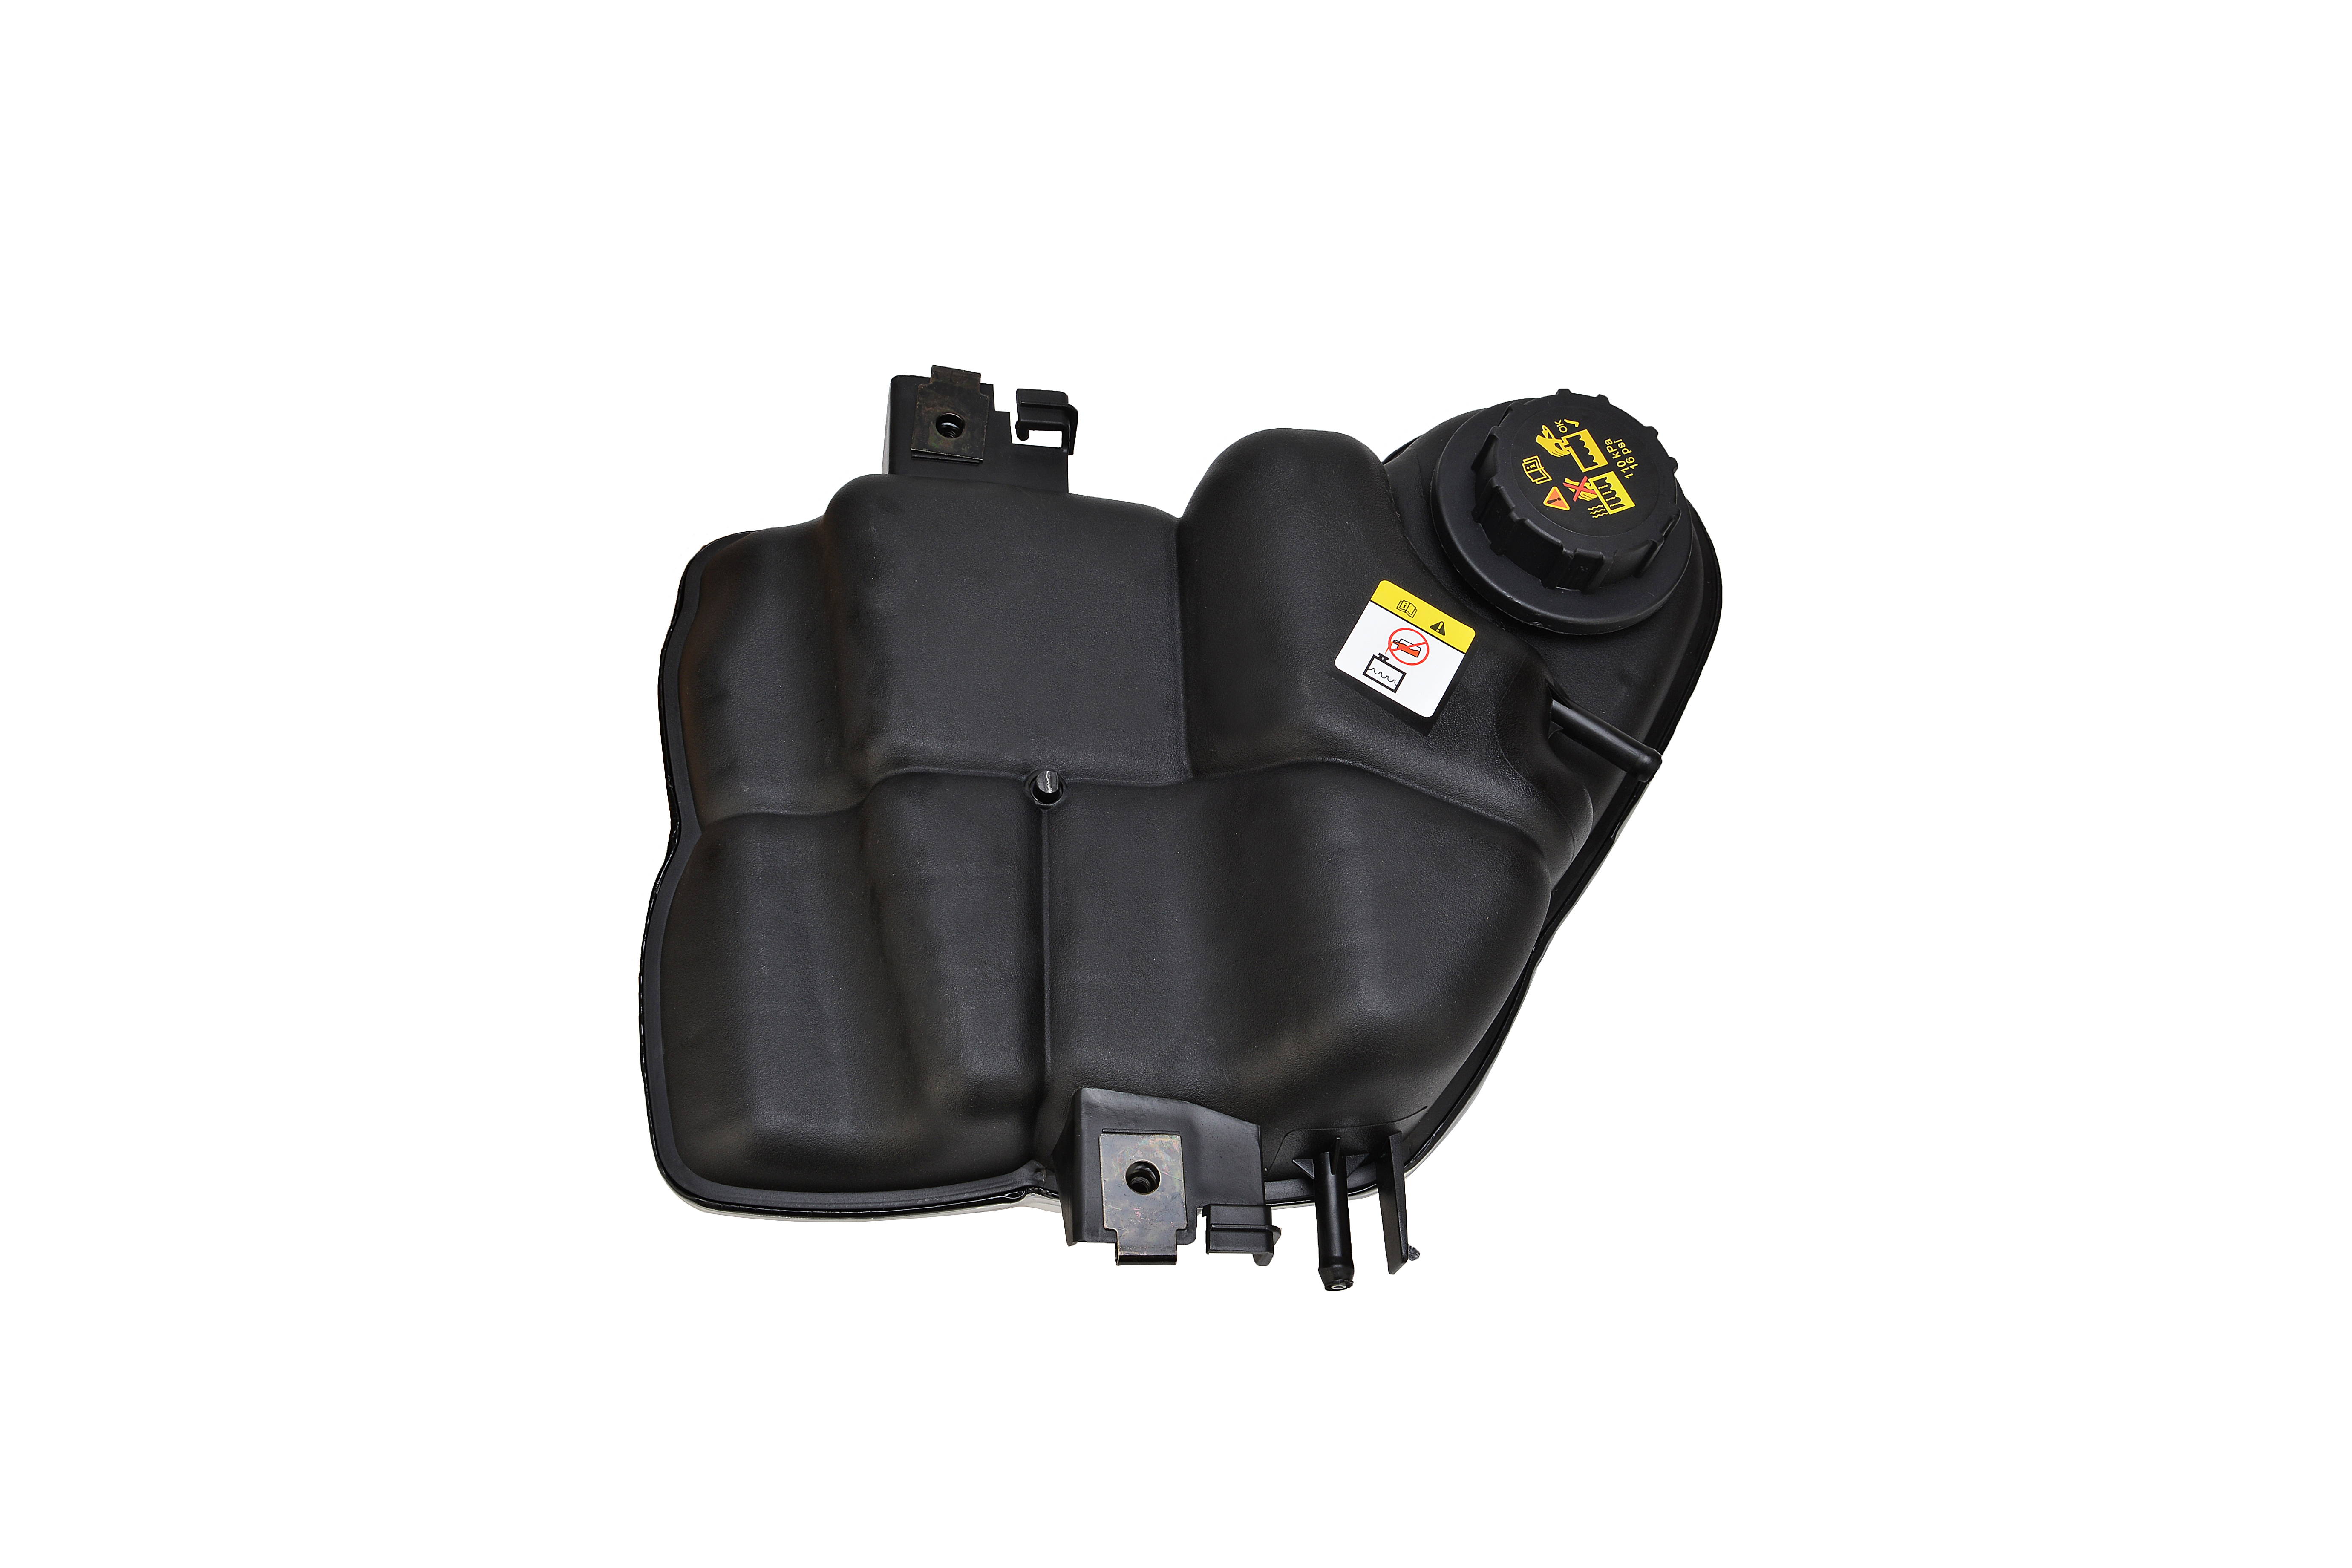 Coolant Recovery Tank with Cap - Fits Powerstroke 6.0L - Replaces 6C3Z-8A080-B, 3C3Z8A080AE Image